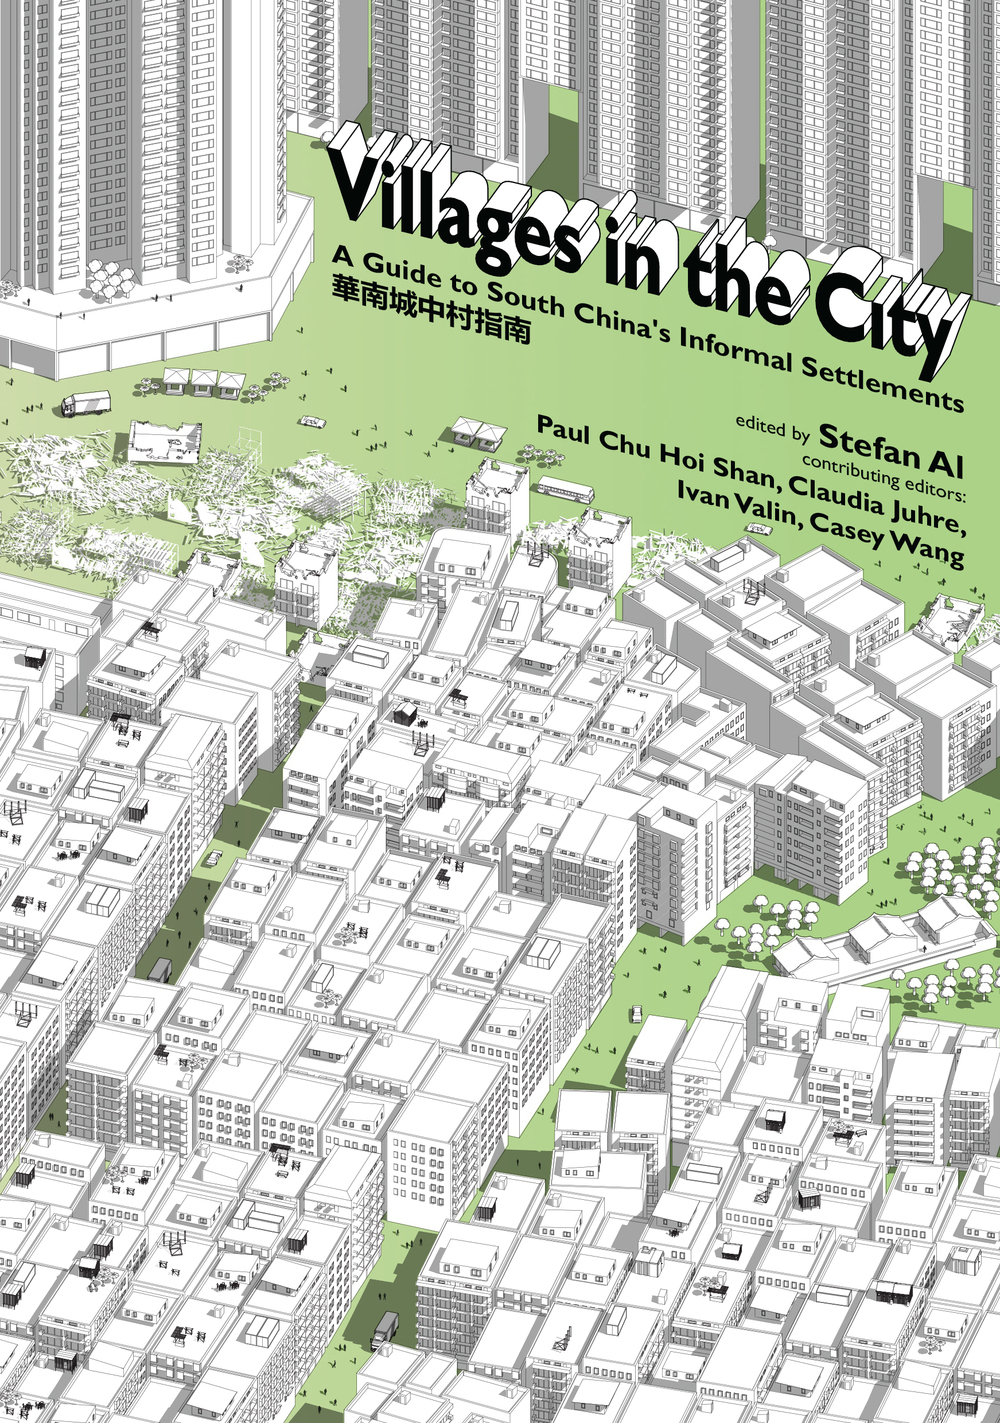 Villages In the City: A Guide to South China's Urban Informality